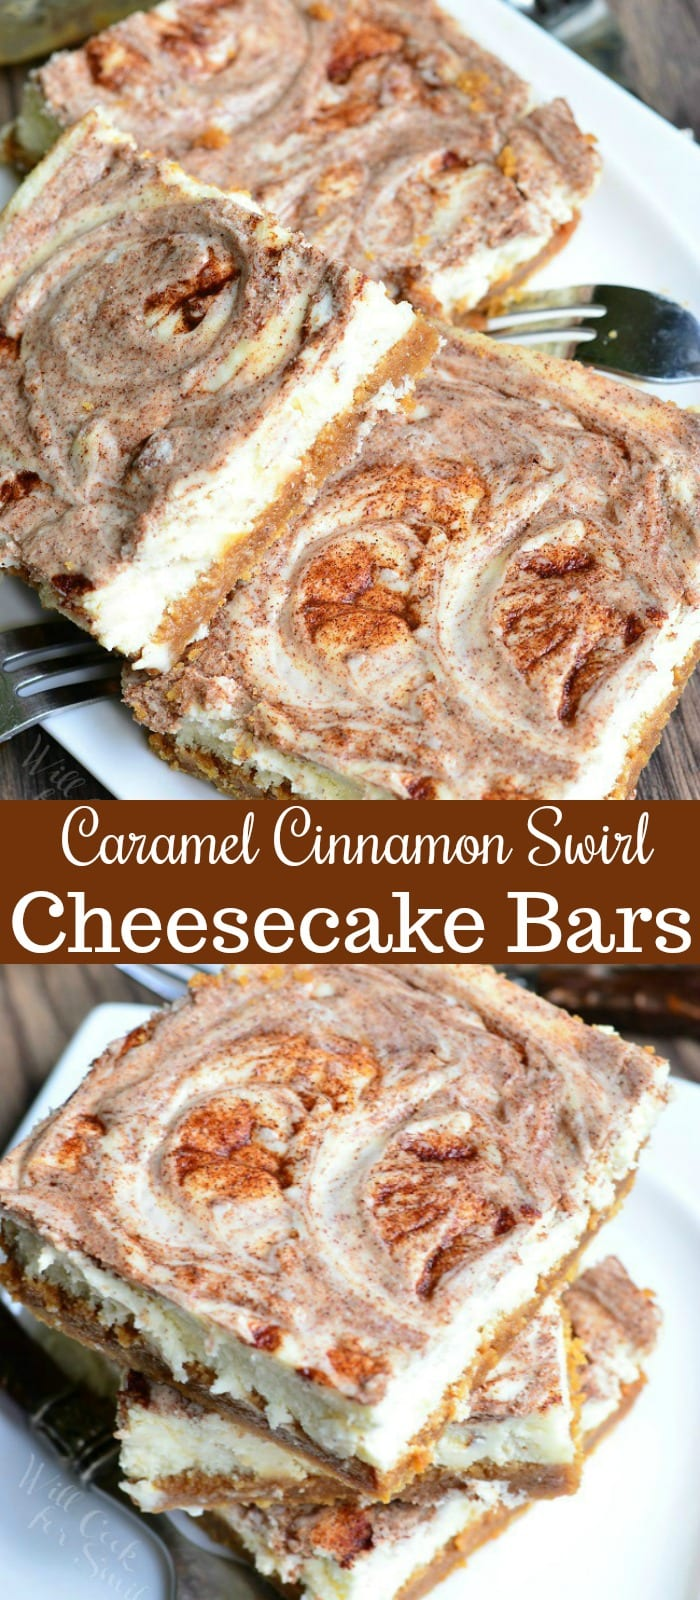 Caramel Cinnamon Swirl Cheesecake Bars Recipe. Creamy, soft cheesecake bars that are layered with dulce de leche in the middle and swirled with sugar cinnamon mixture. #cheesecake #cheesecakebars #cinnamon #caramel #cinnamonswirl